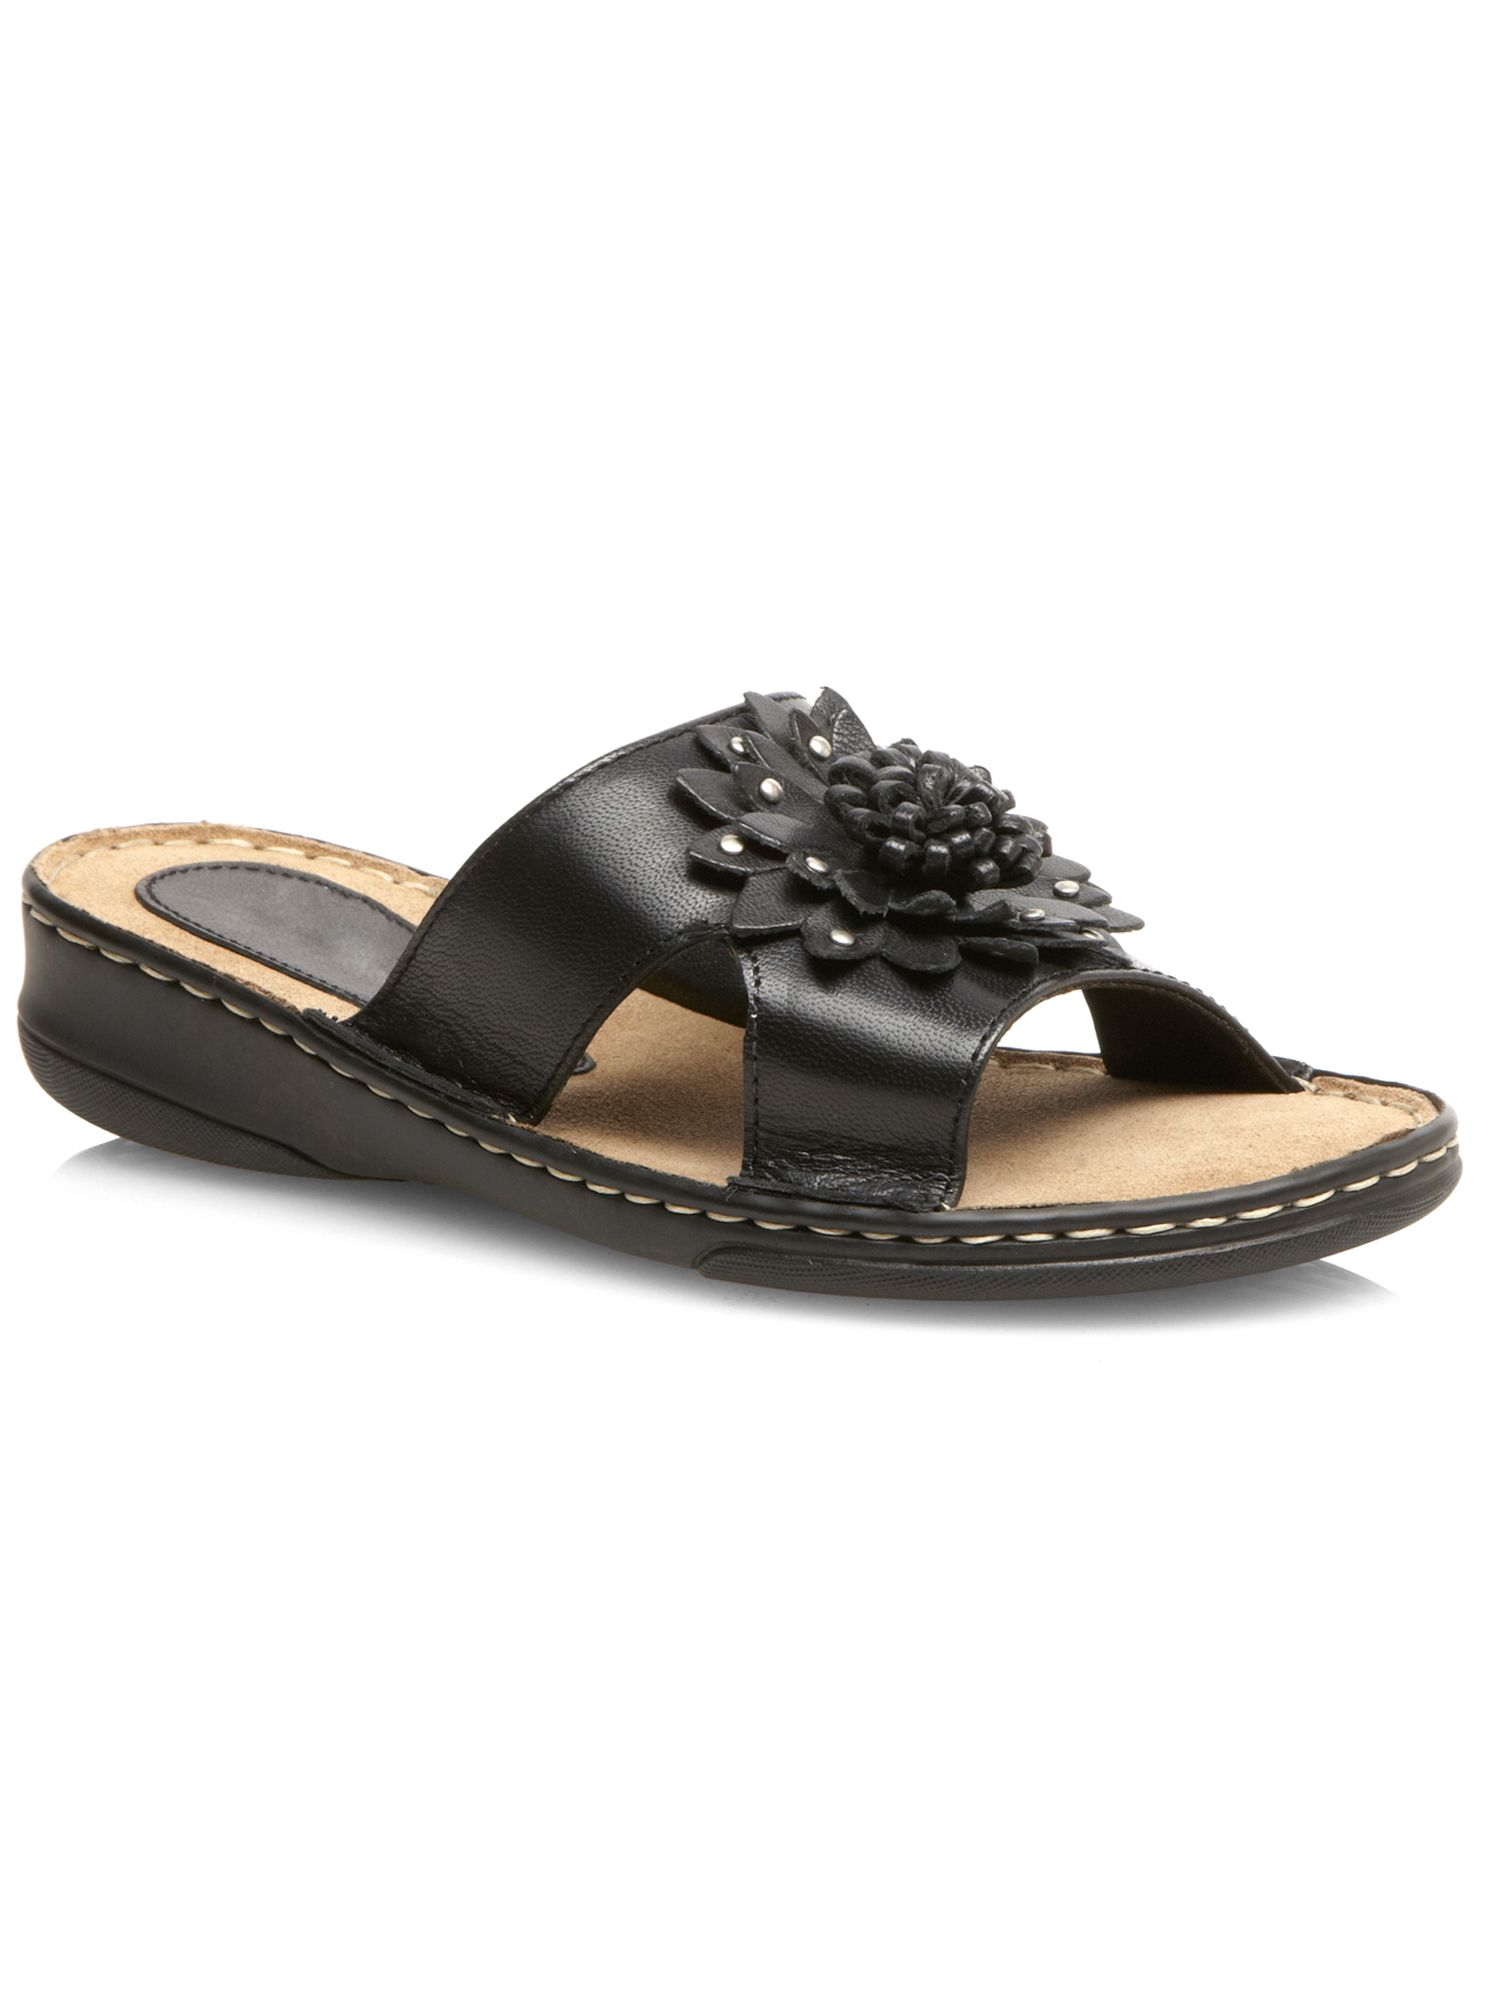 Black flower leather sandal